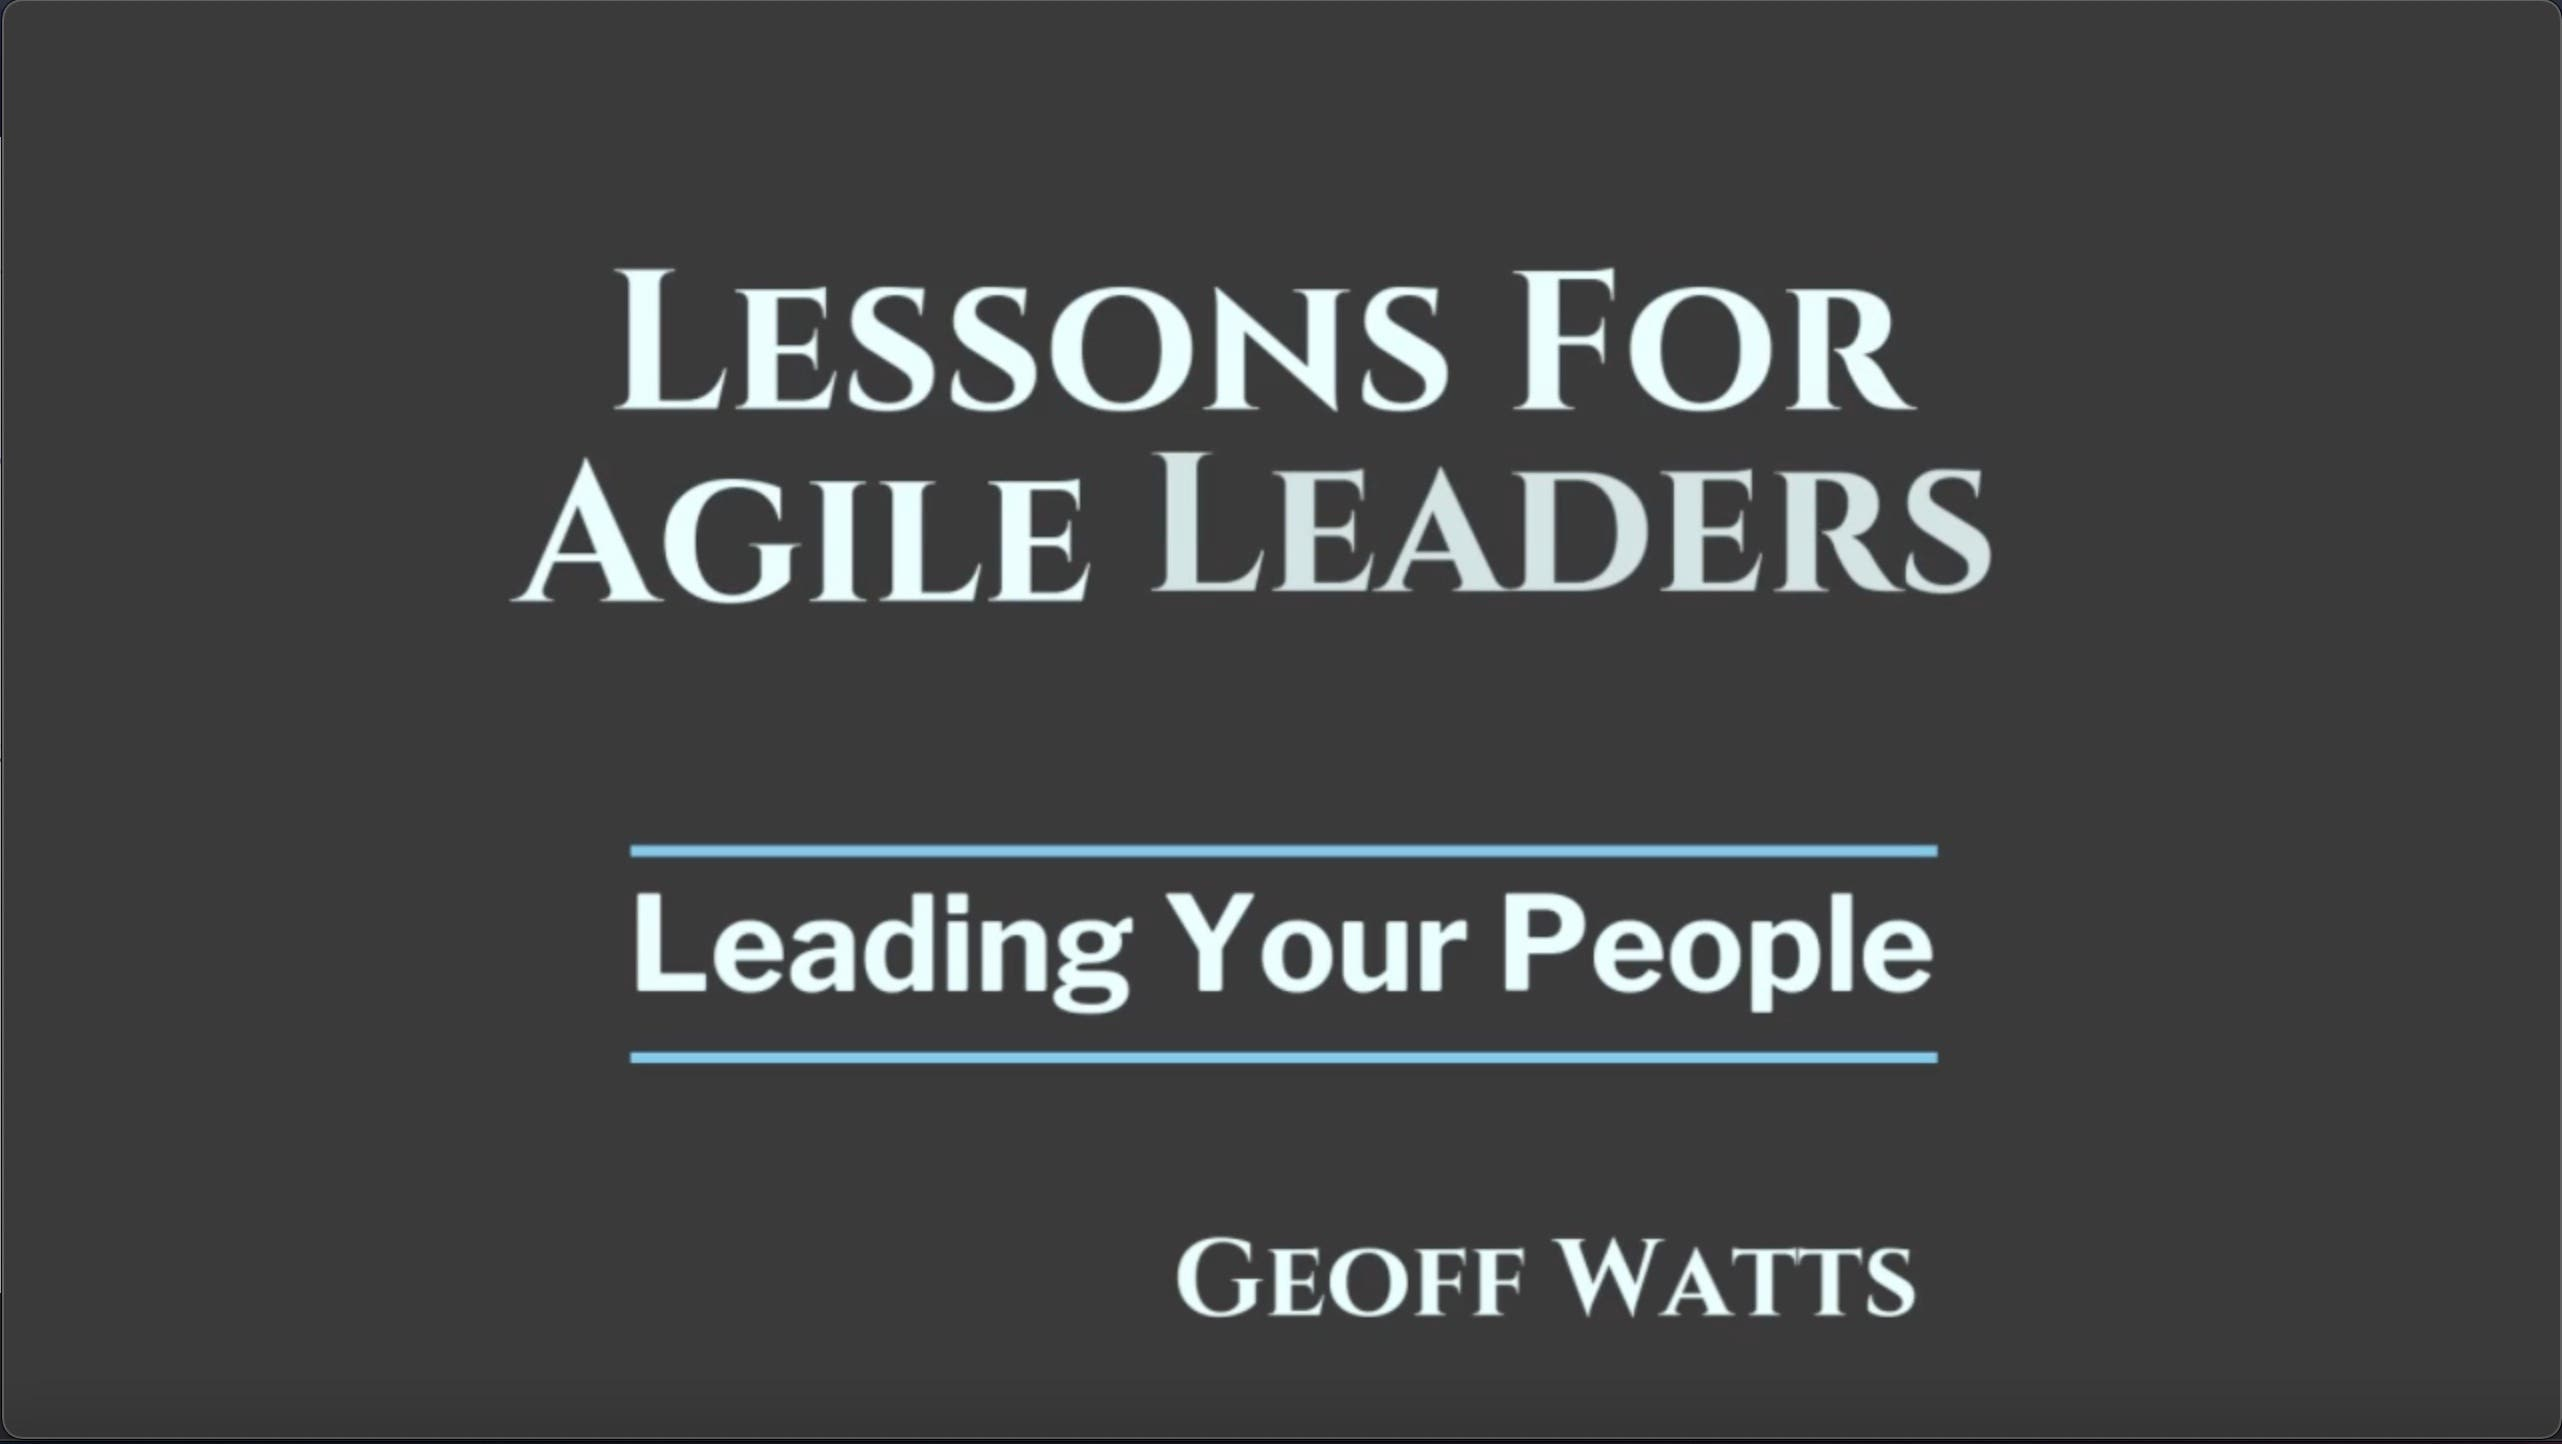 Lessons For Agile Leaders 1 - Leading Your People